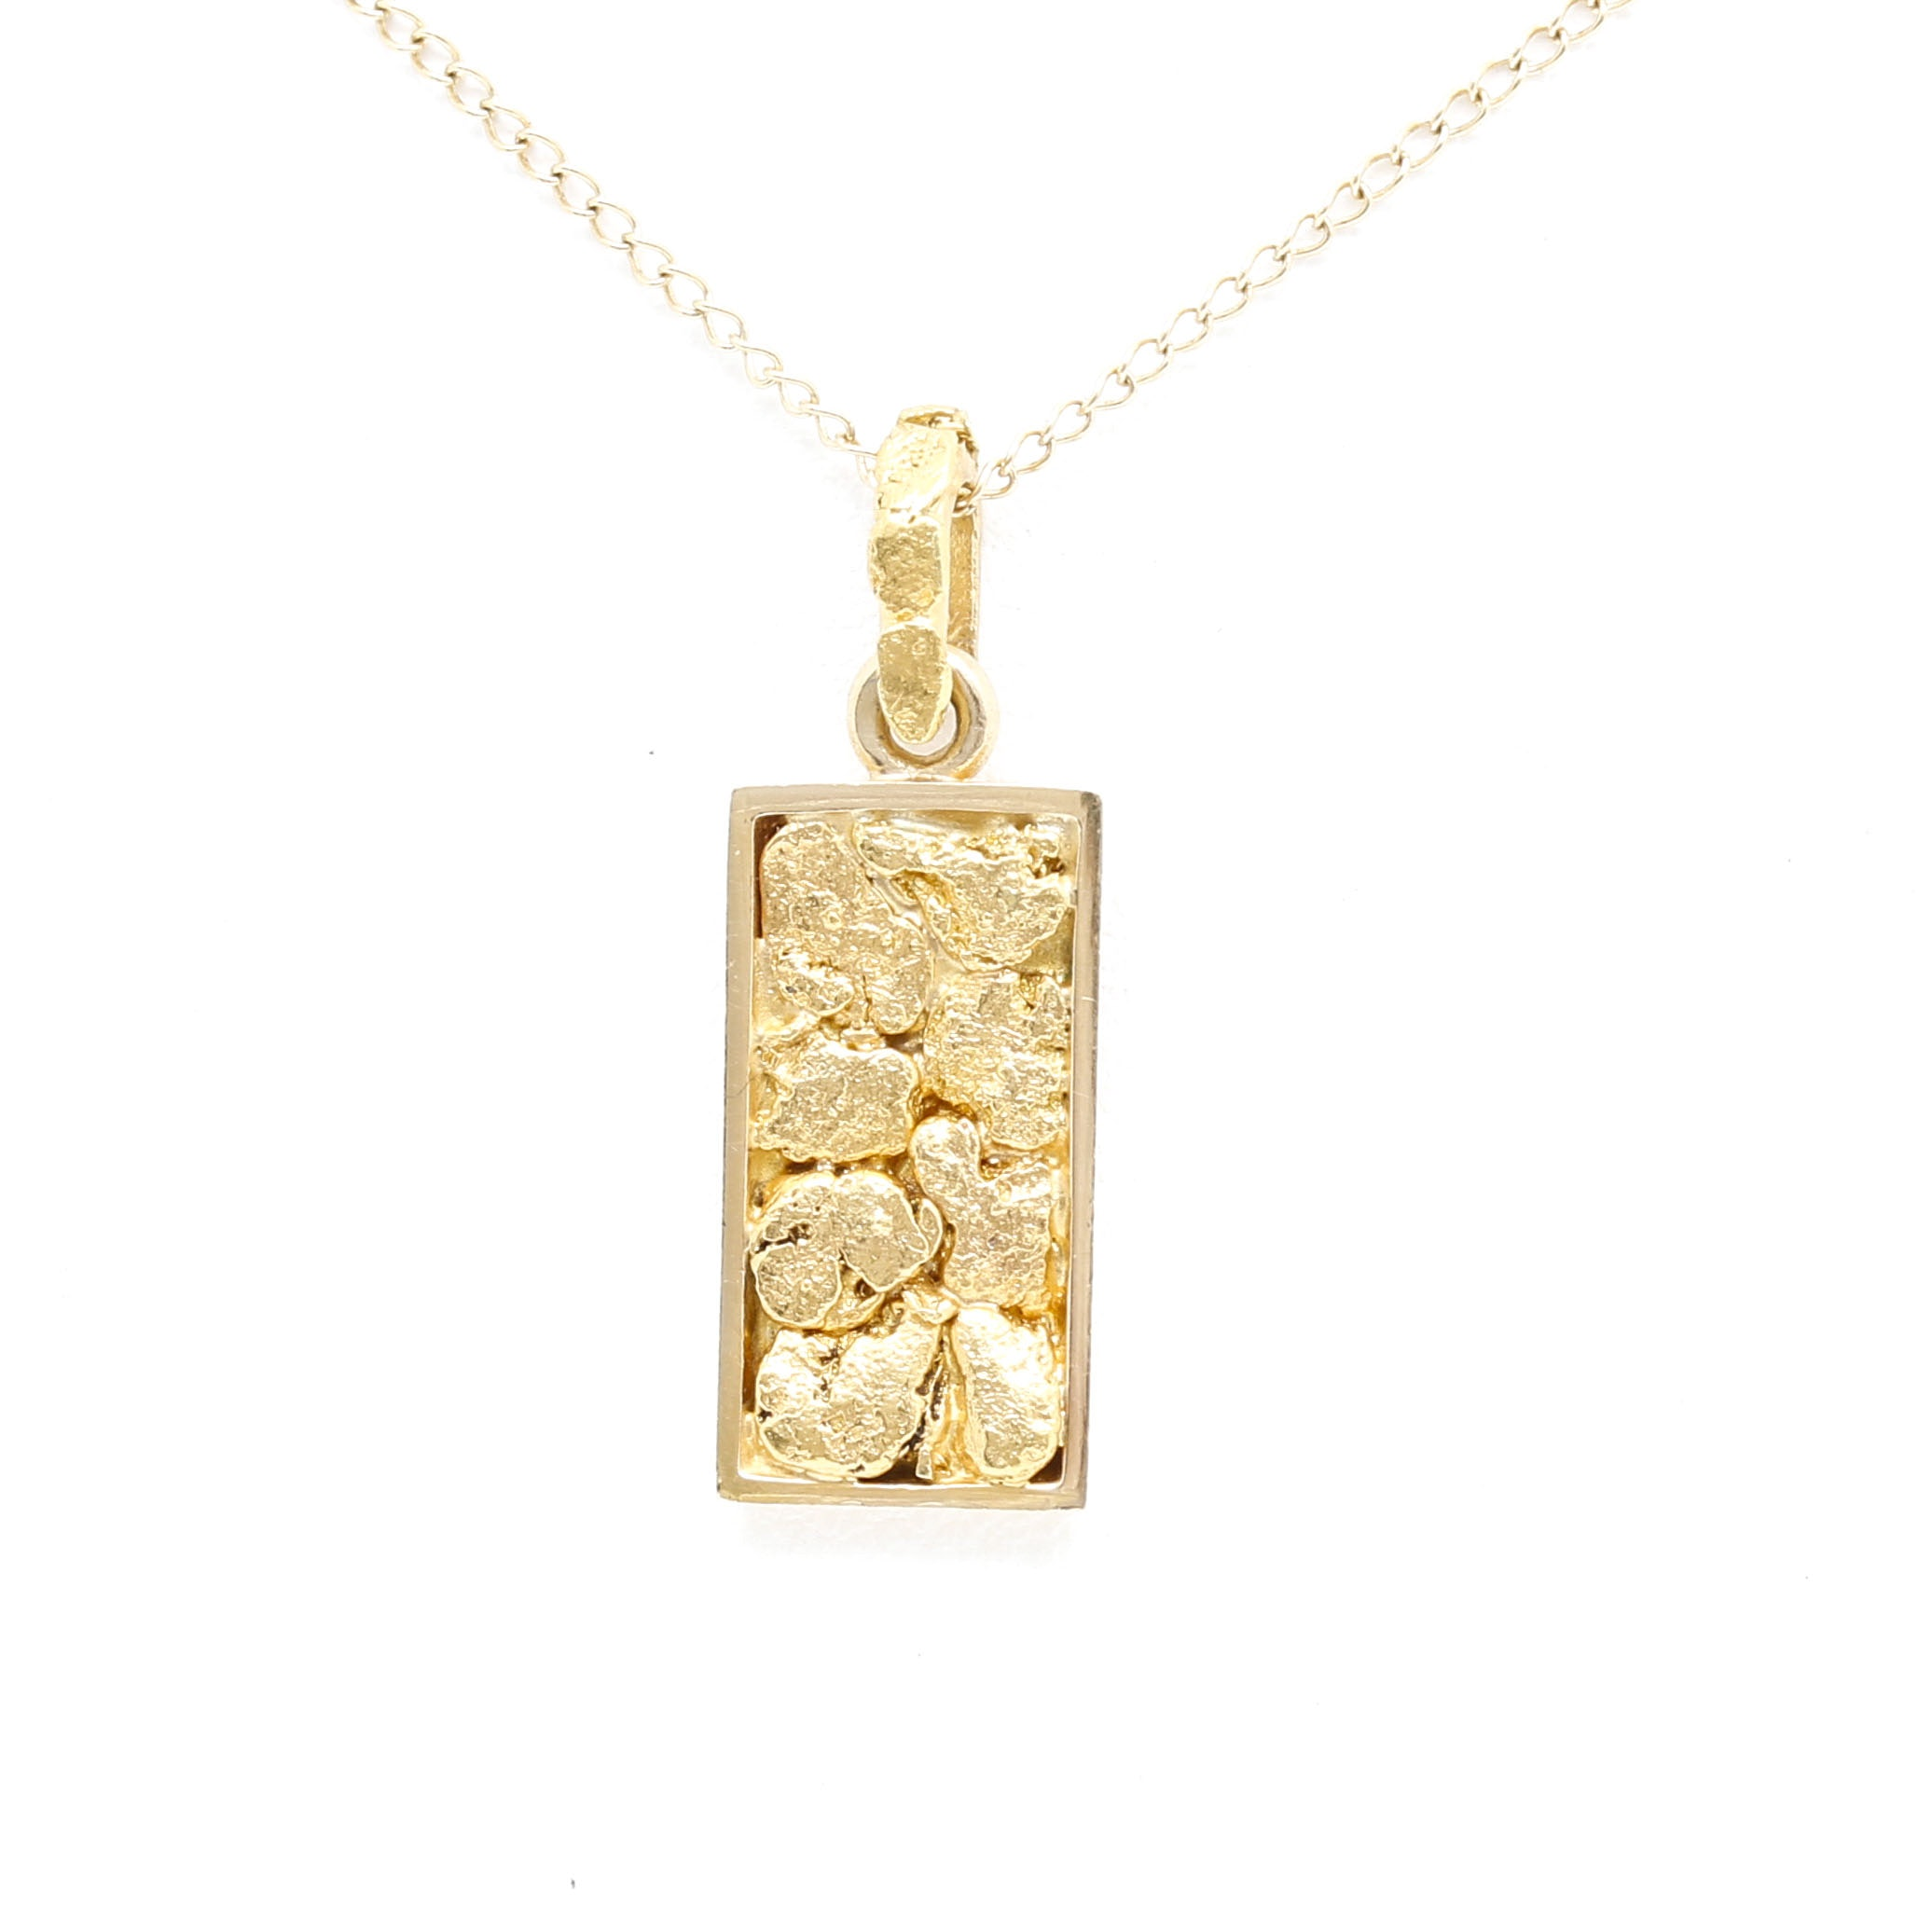 22K and 14K Yellow Gold Pressed Nugget Pendant Necklace